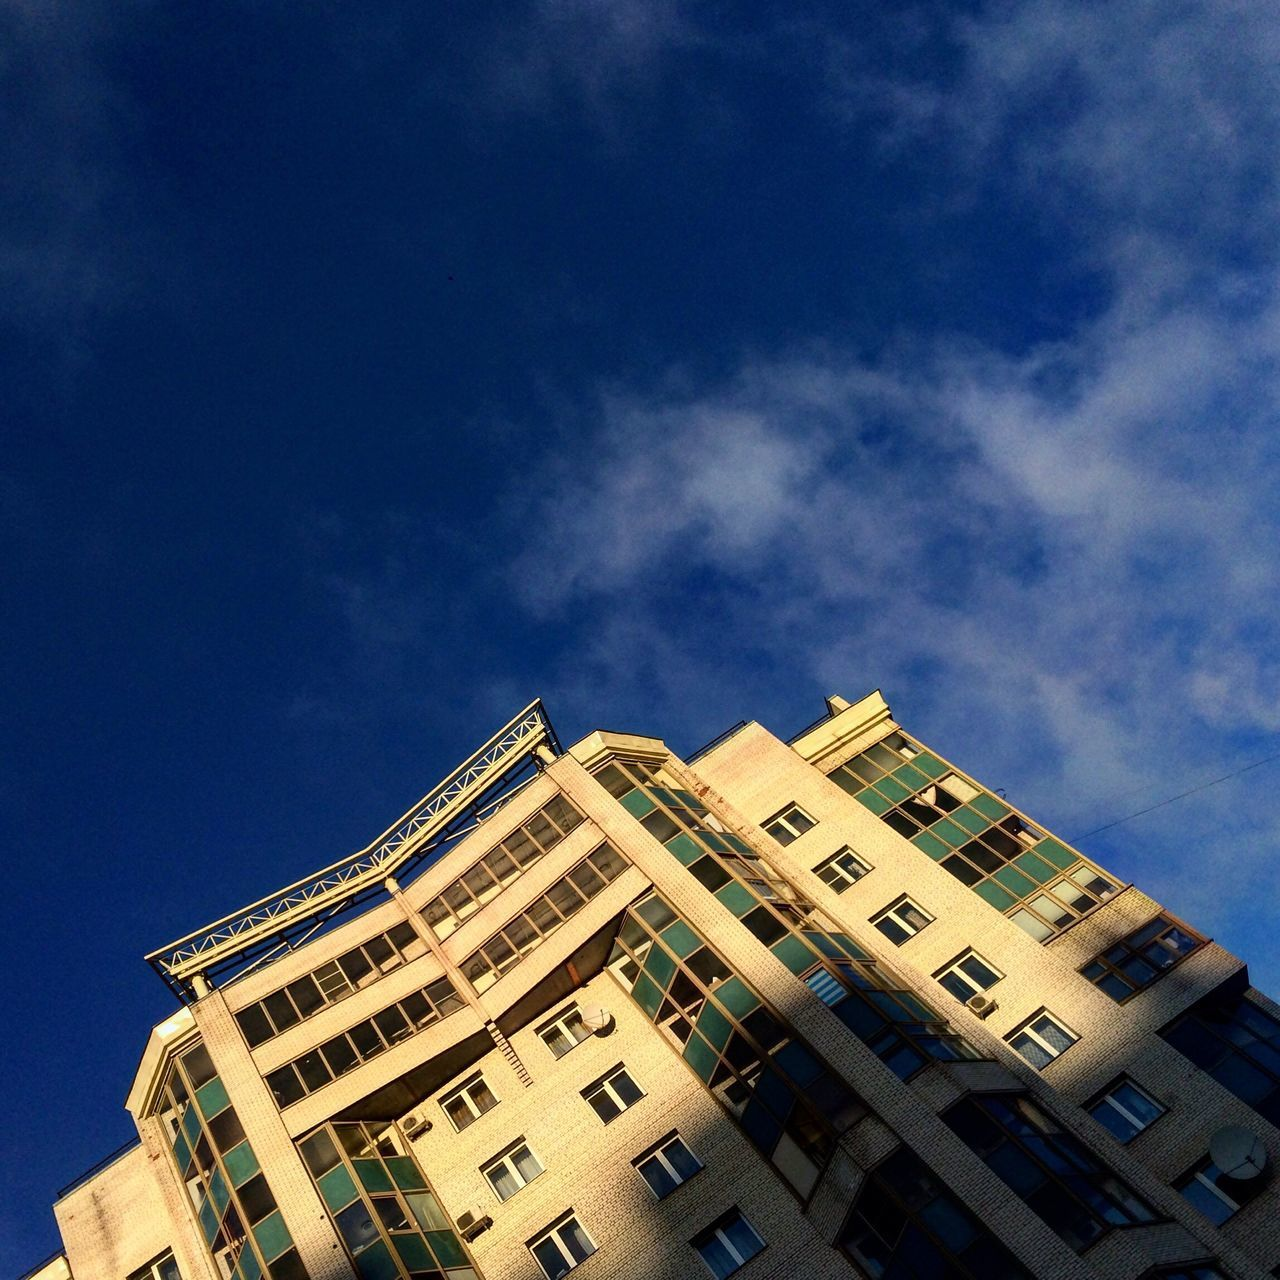 Low Angle View Architecture Building Exterior Sky Built Structure No People Outdoors Cloud - Sky City Day